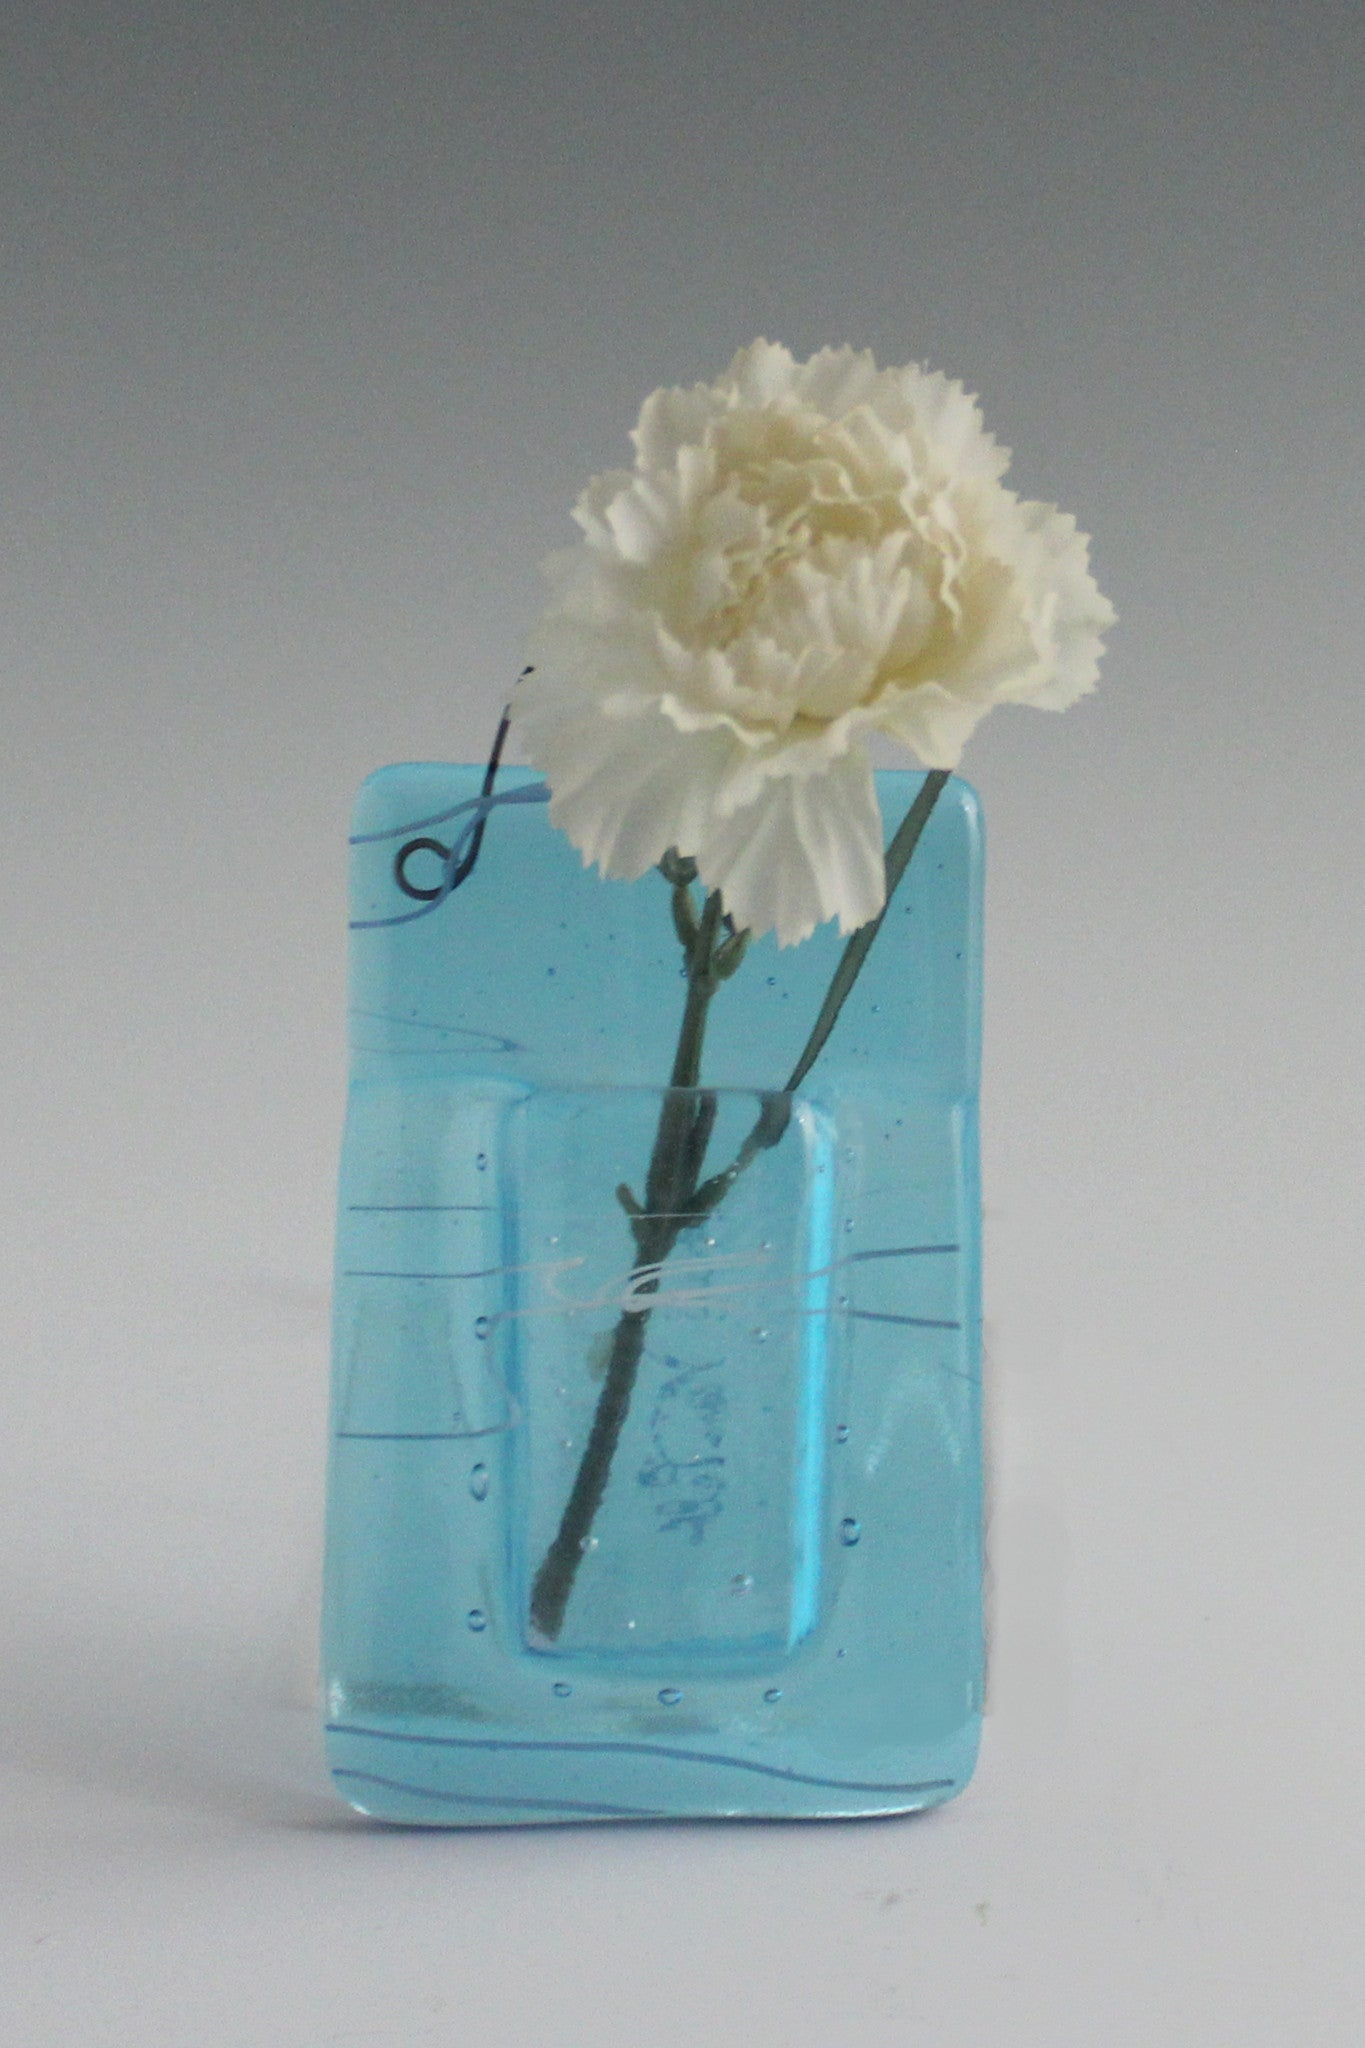 SOLD - Pocket Vase 2: Turquoise Transparent with White Streaky Accents